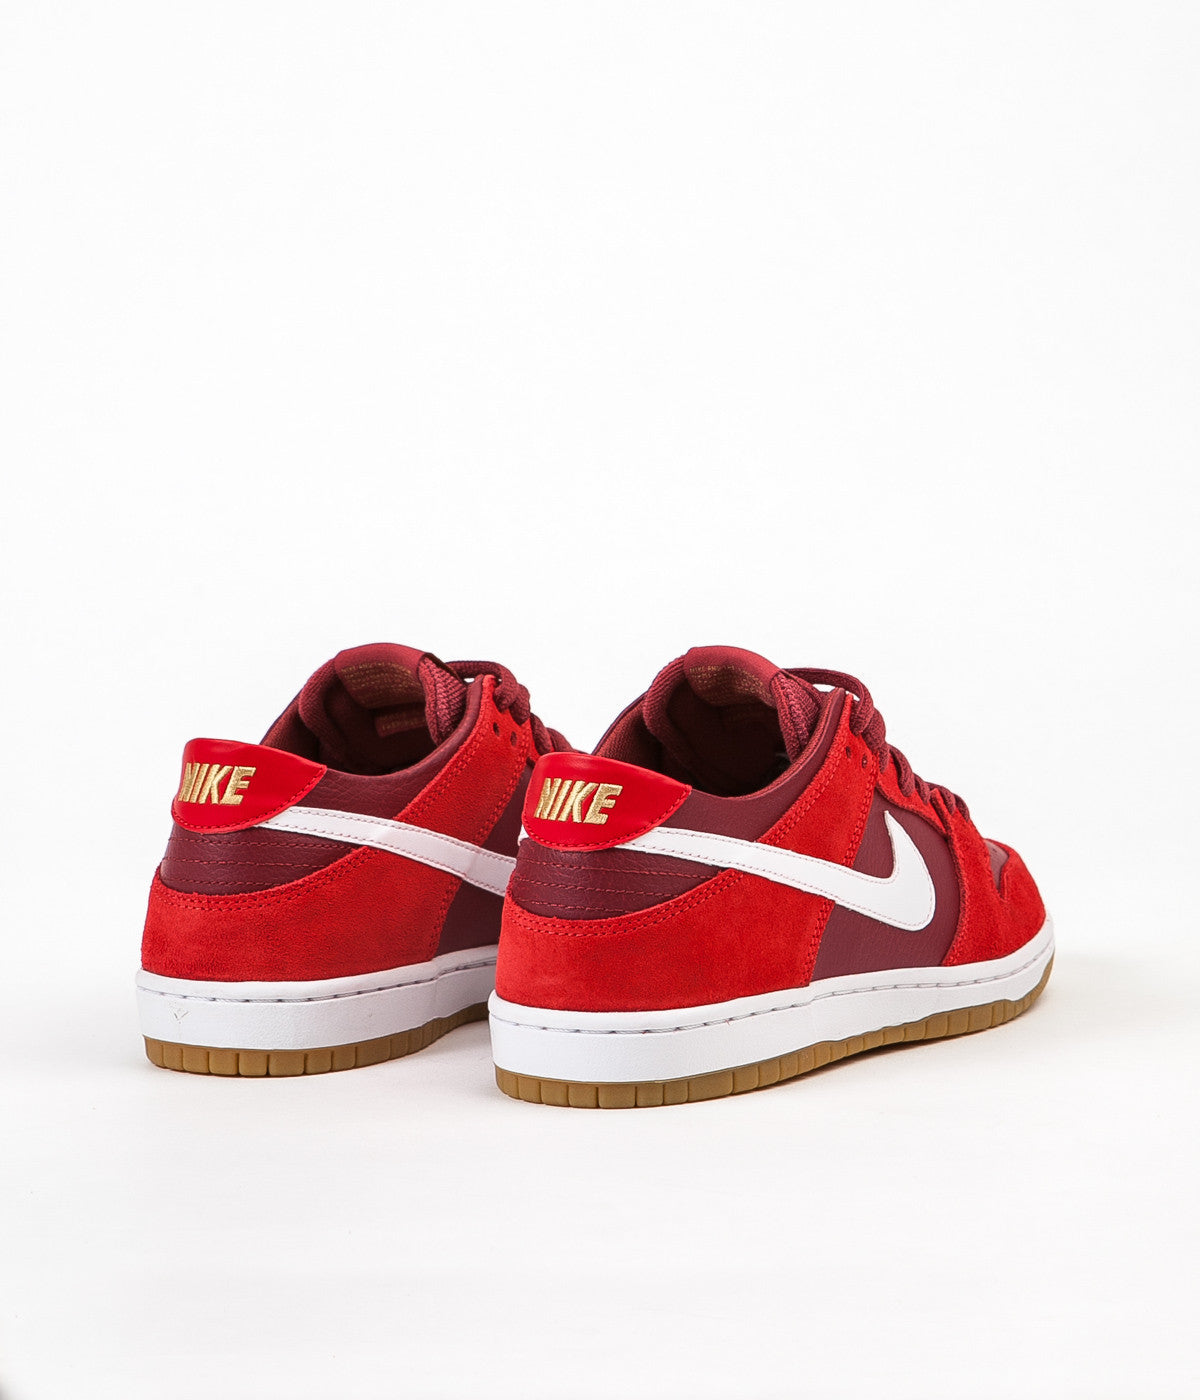 hot sale online 94285 9646f Nike SB Dunk Low Pro Shoes - Track Red / White - Cedar - Gum ...